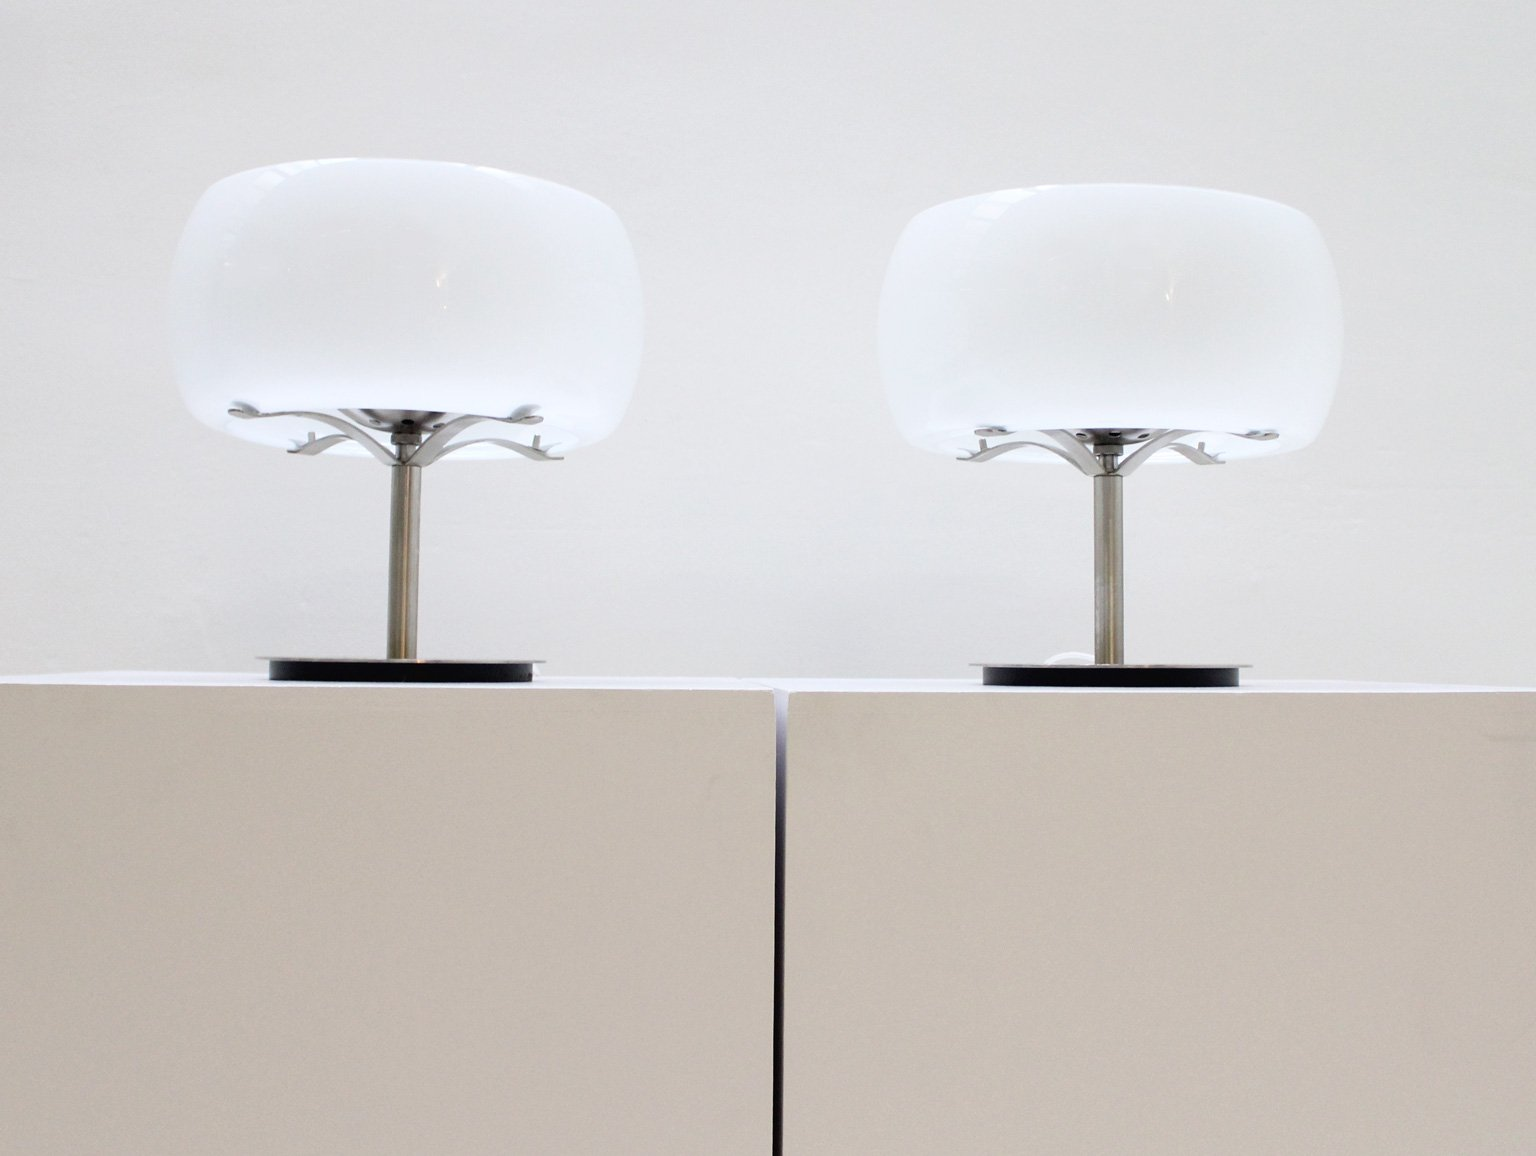 italian erse table lamps by vico magistretti for artemide 1960s set of 2 - Artemide Lighting